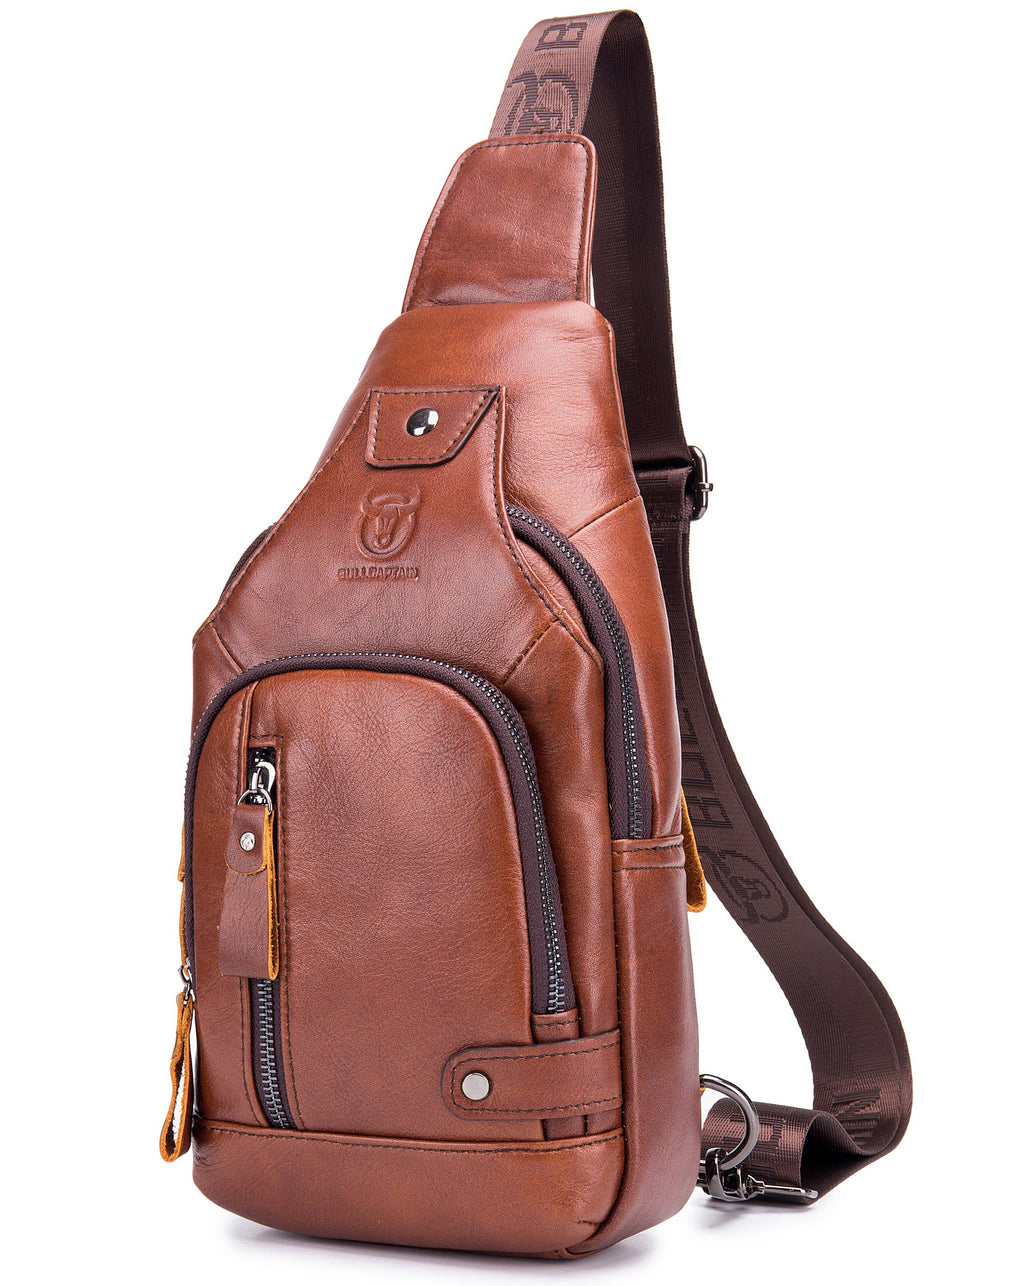 Bullcaptain Leather Sling Bag Men Crossbody Small Sachel Bags Genuine Leather Chest Bag With Charing Port - 129